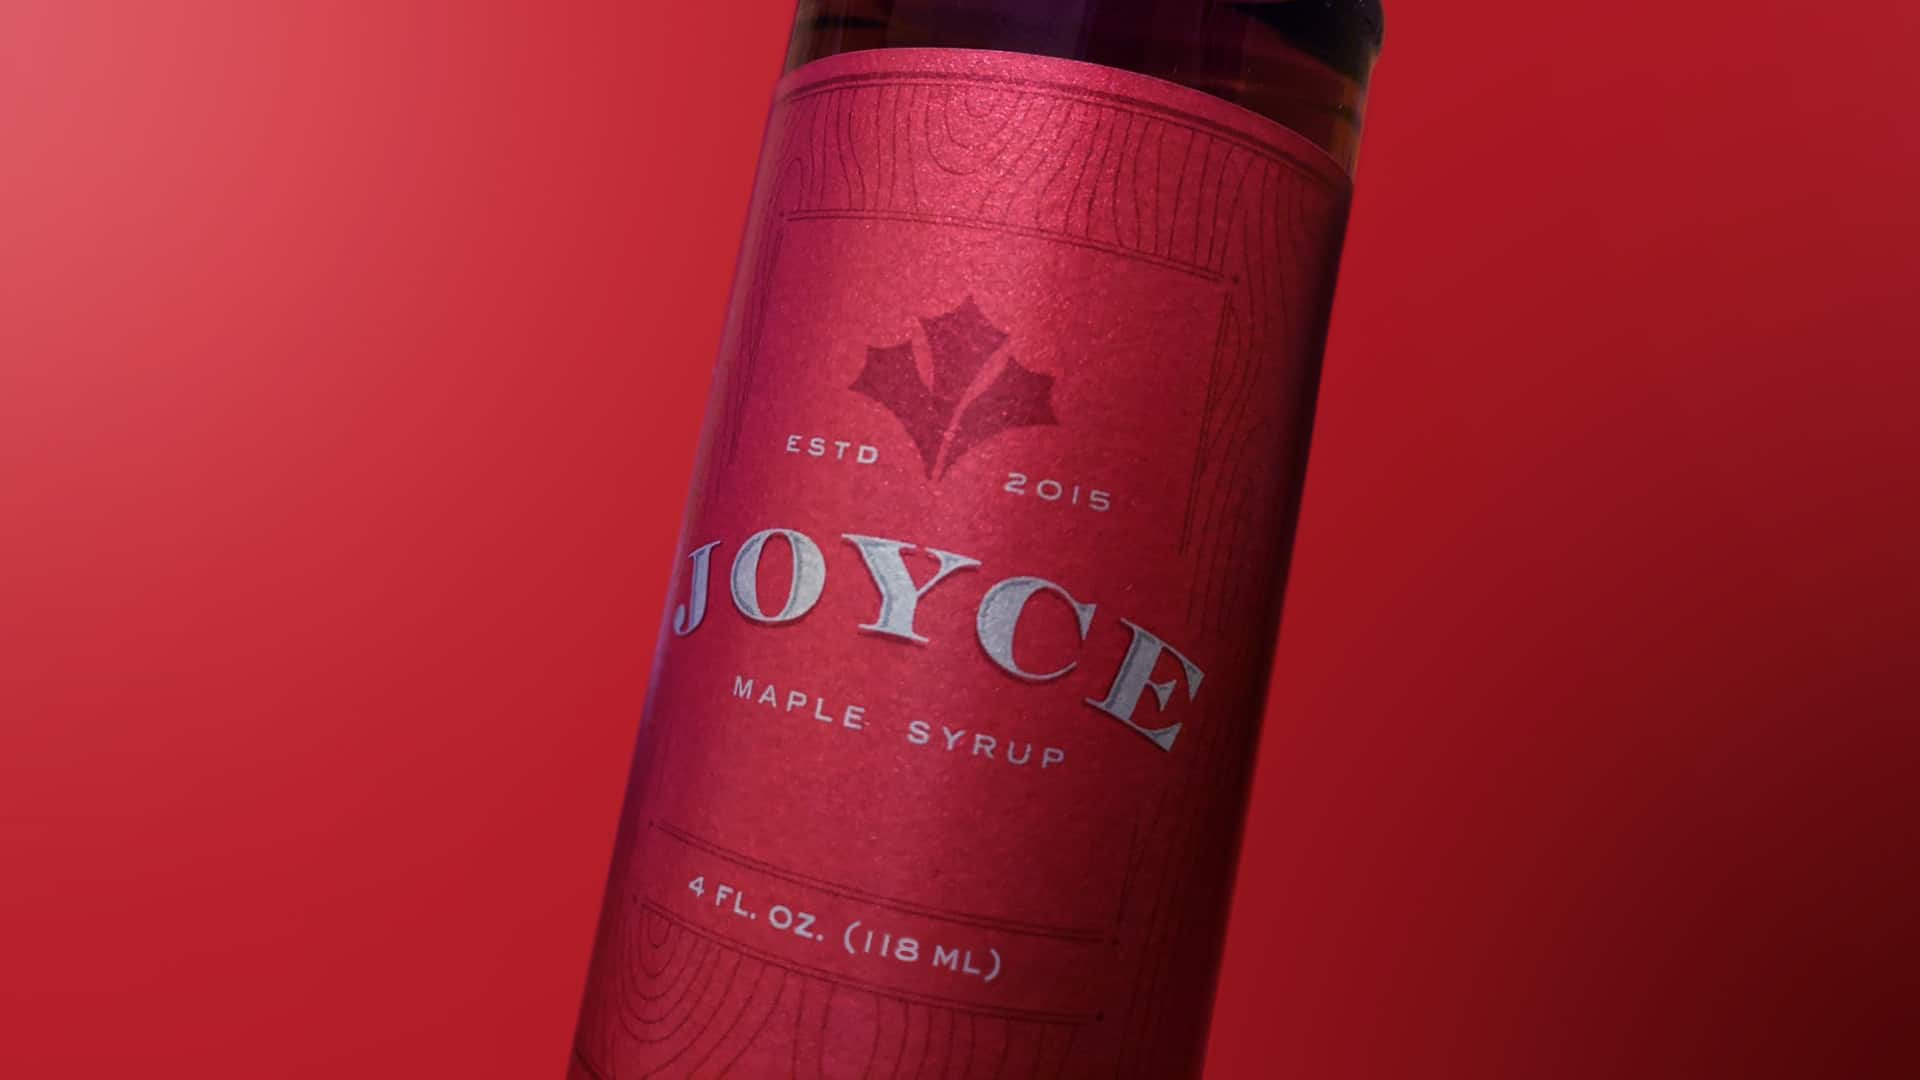 joyce maple syrup package design closeup